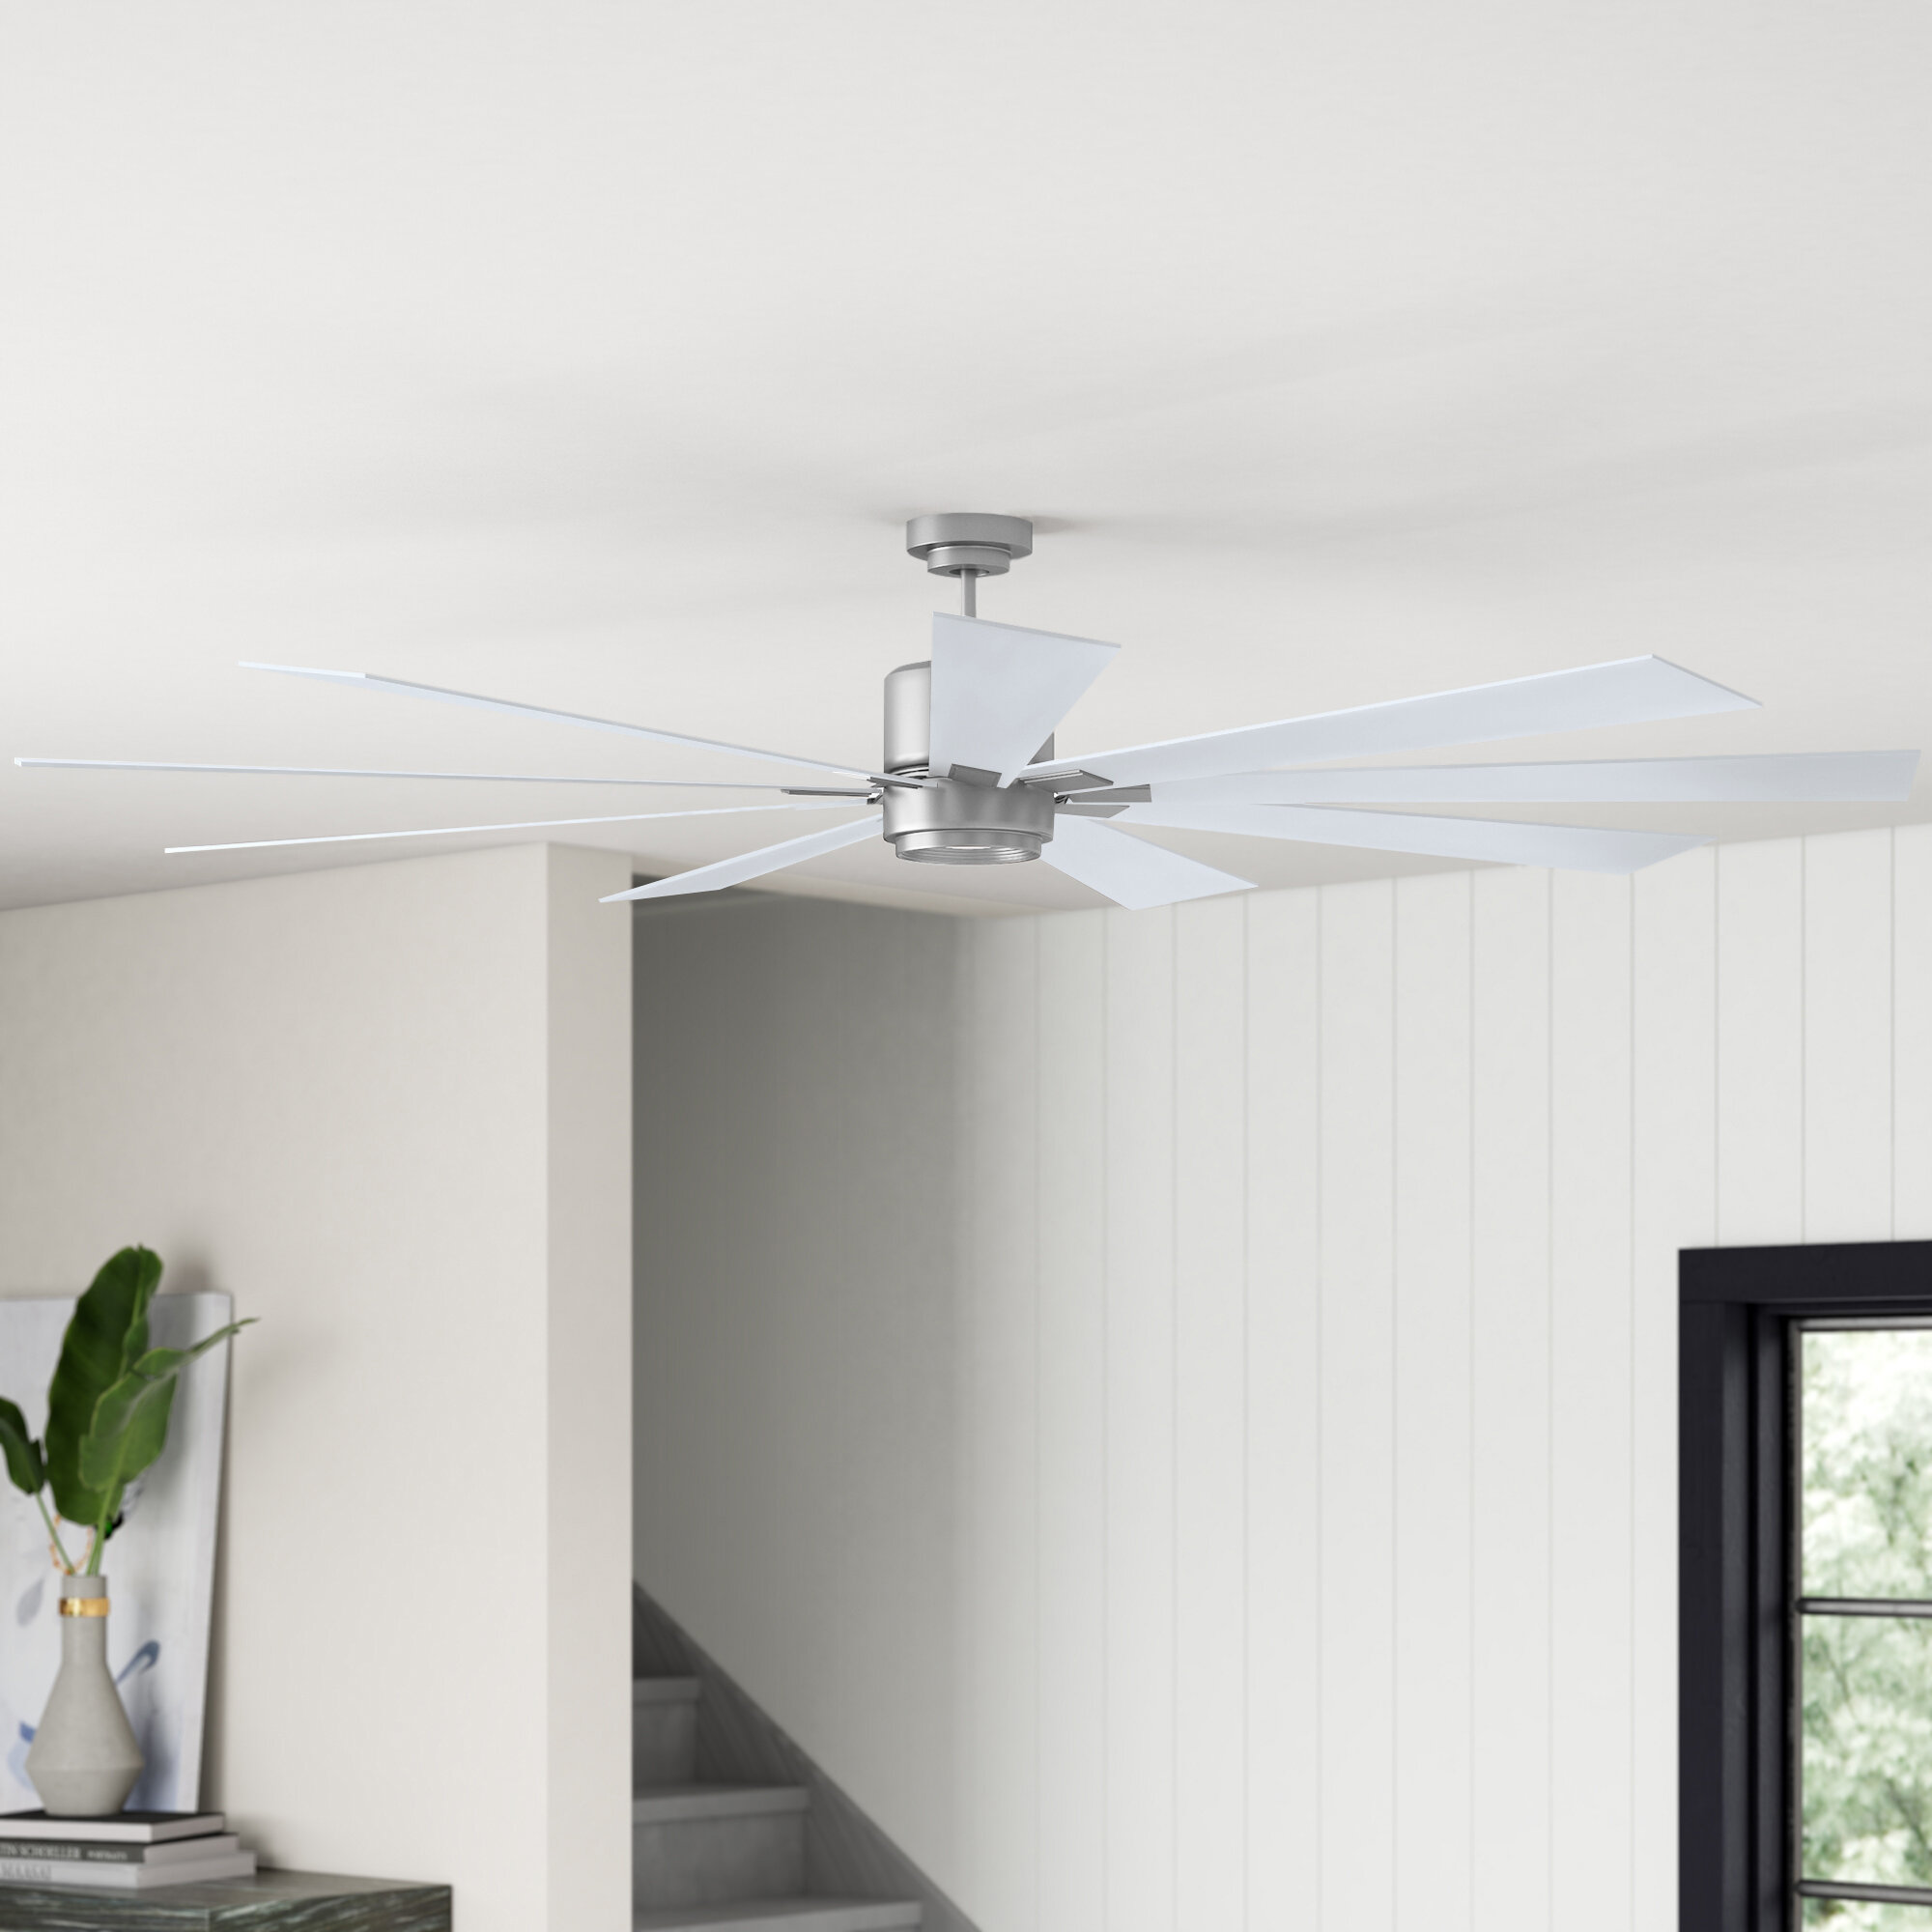 72 9 Blade Led Standard Ceiling Fan With Wall Control And Light Kit Included Reviews Joss Main